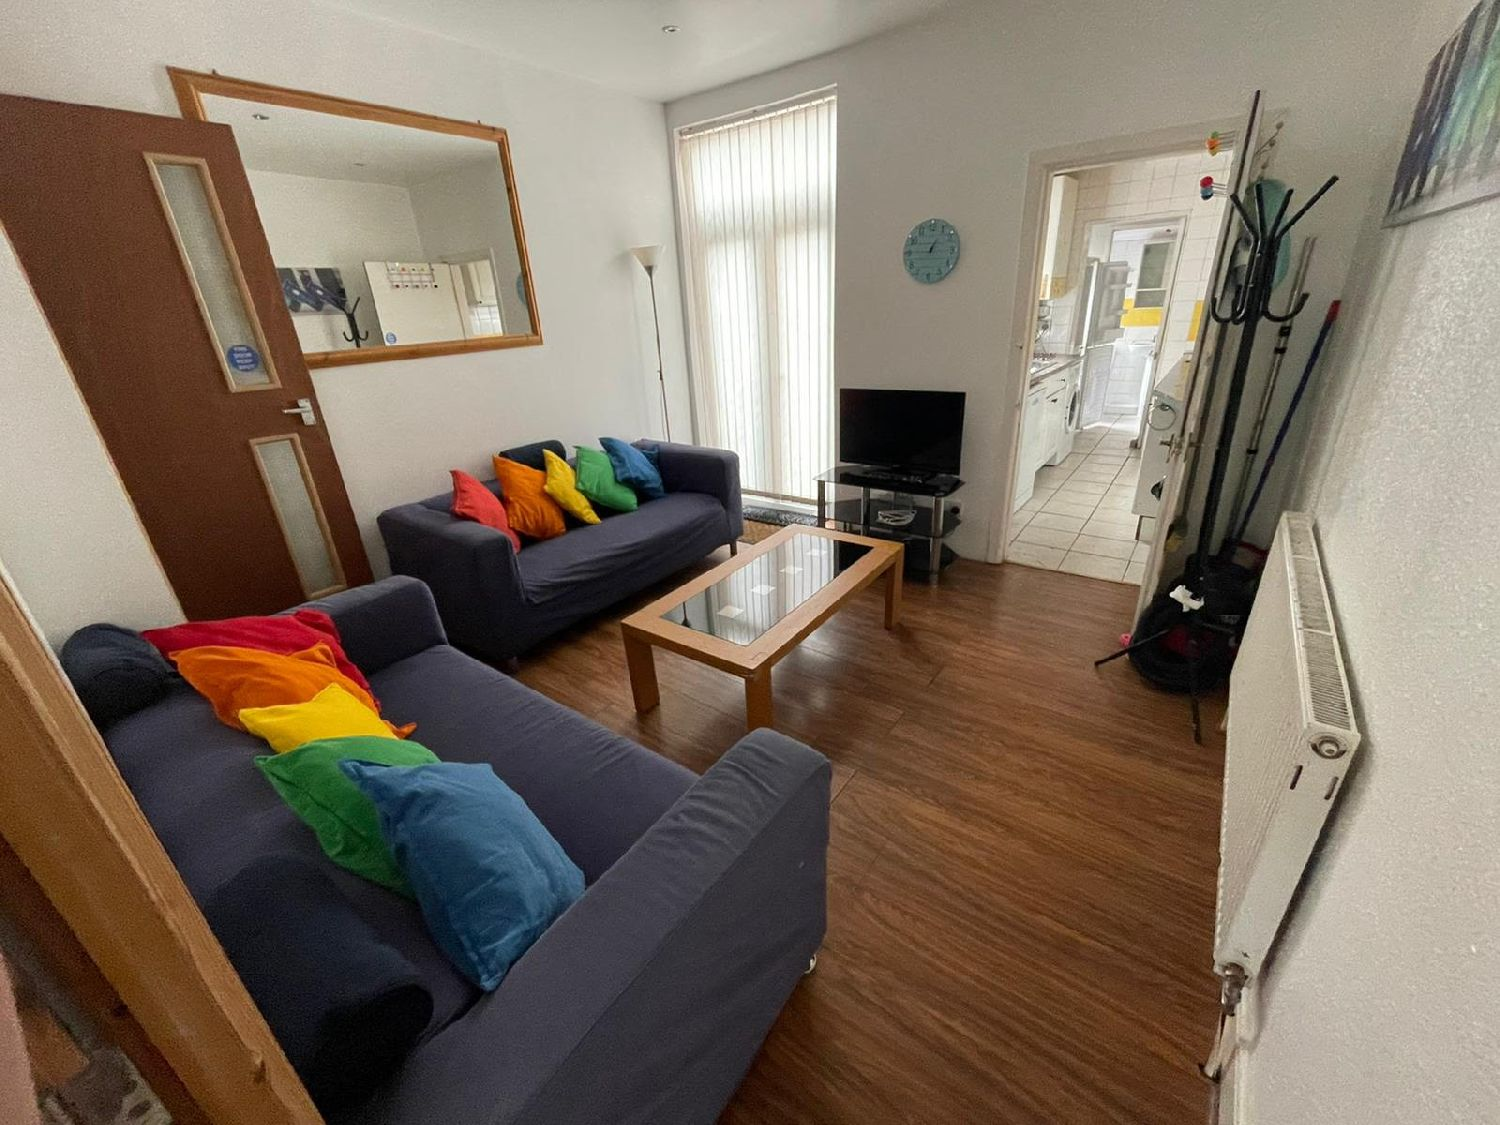 5 Bedrooms House Share for rent in Rookery Road, Selly Oak, West Midlands, B29 7DG